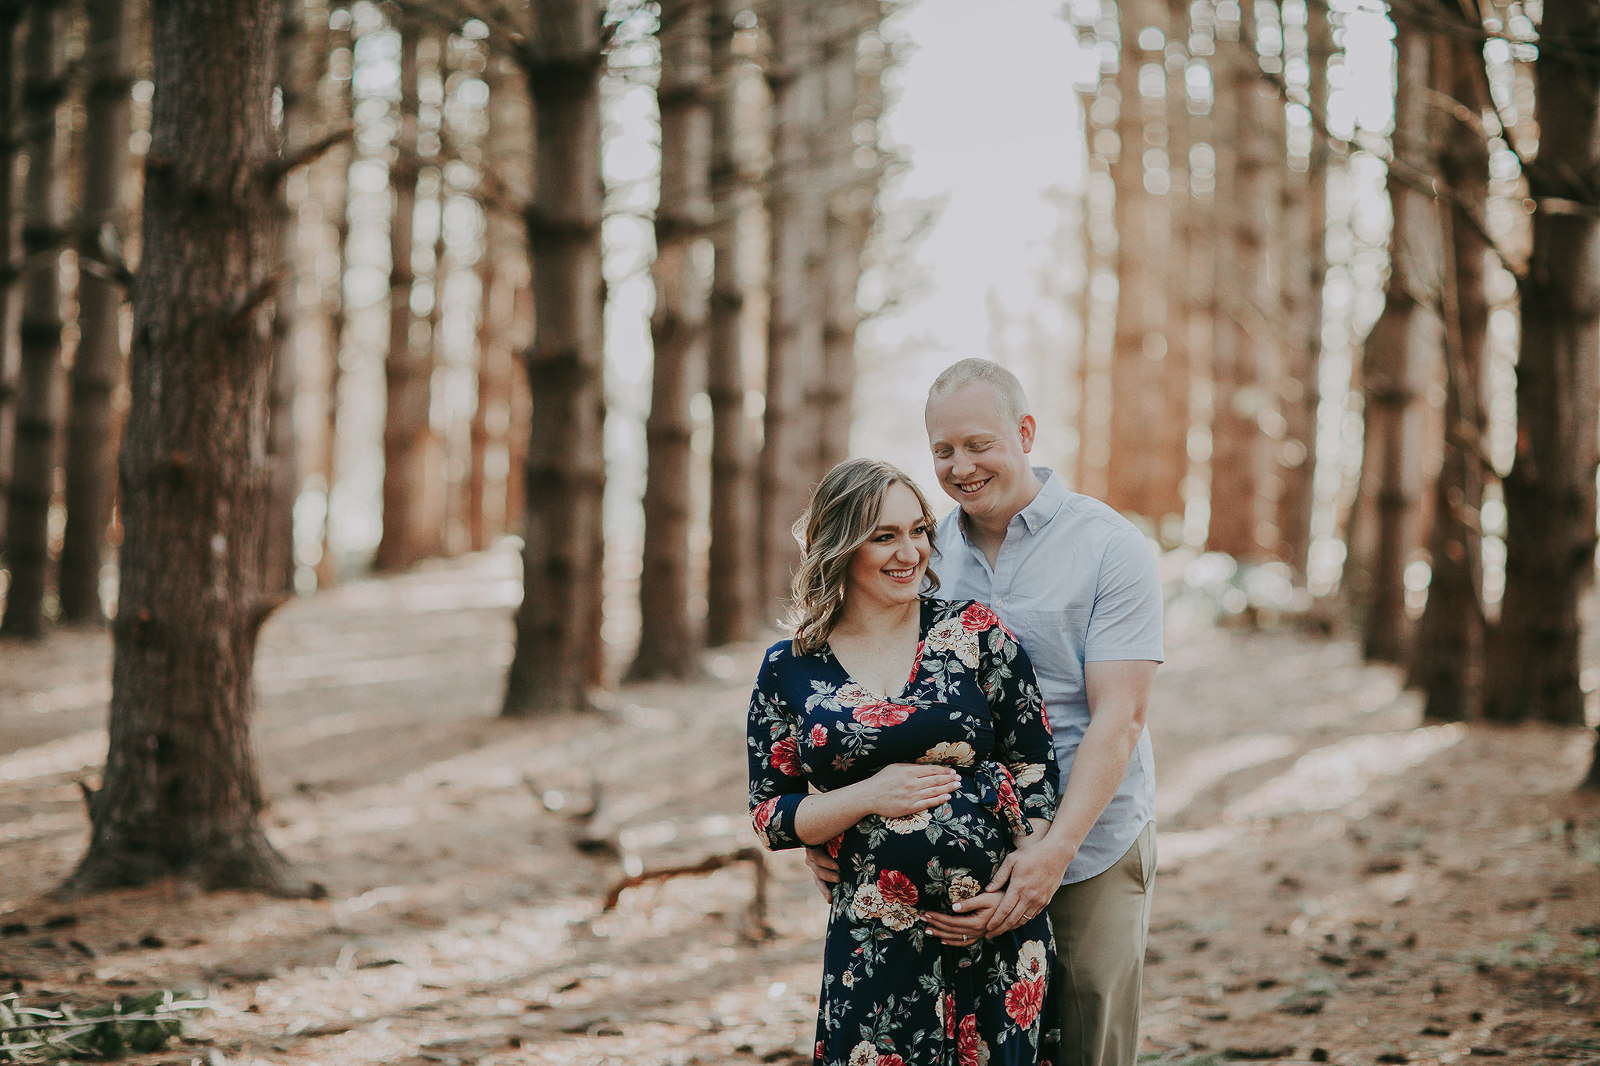 Kansas City Maternity photographer outdoor with trees in forest